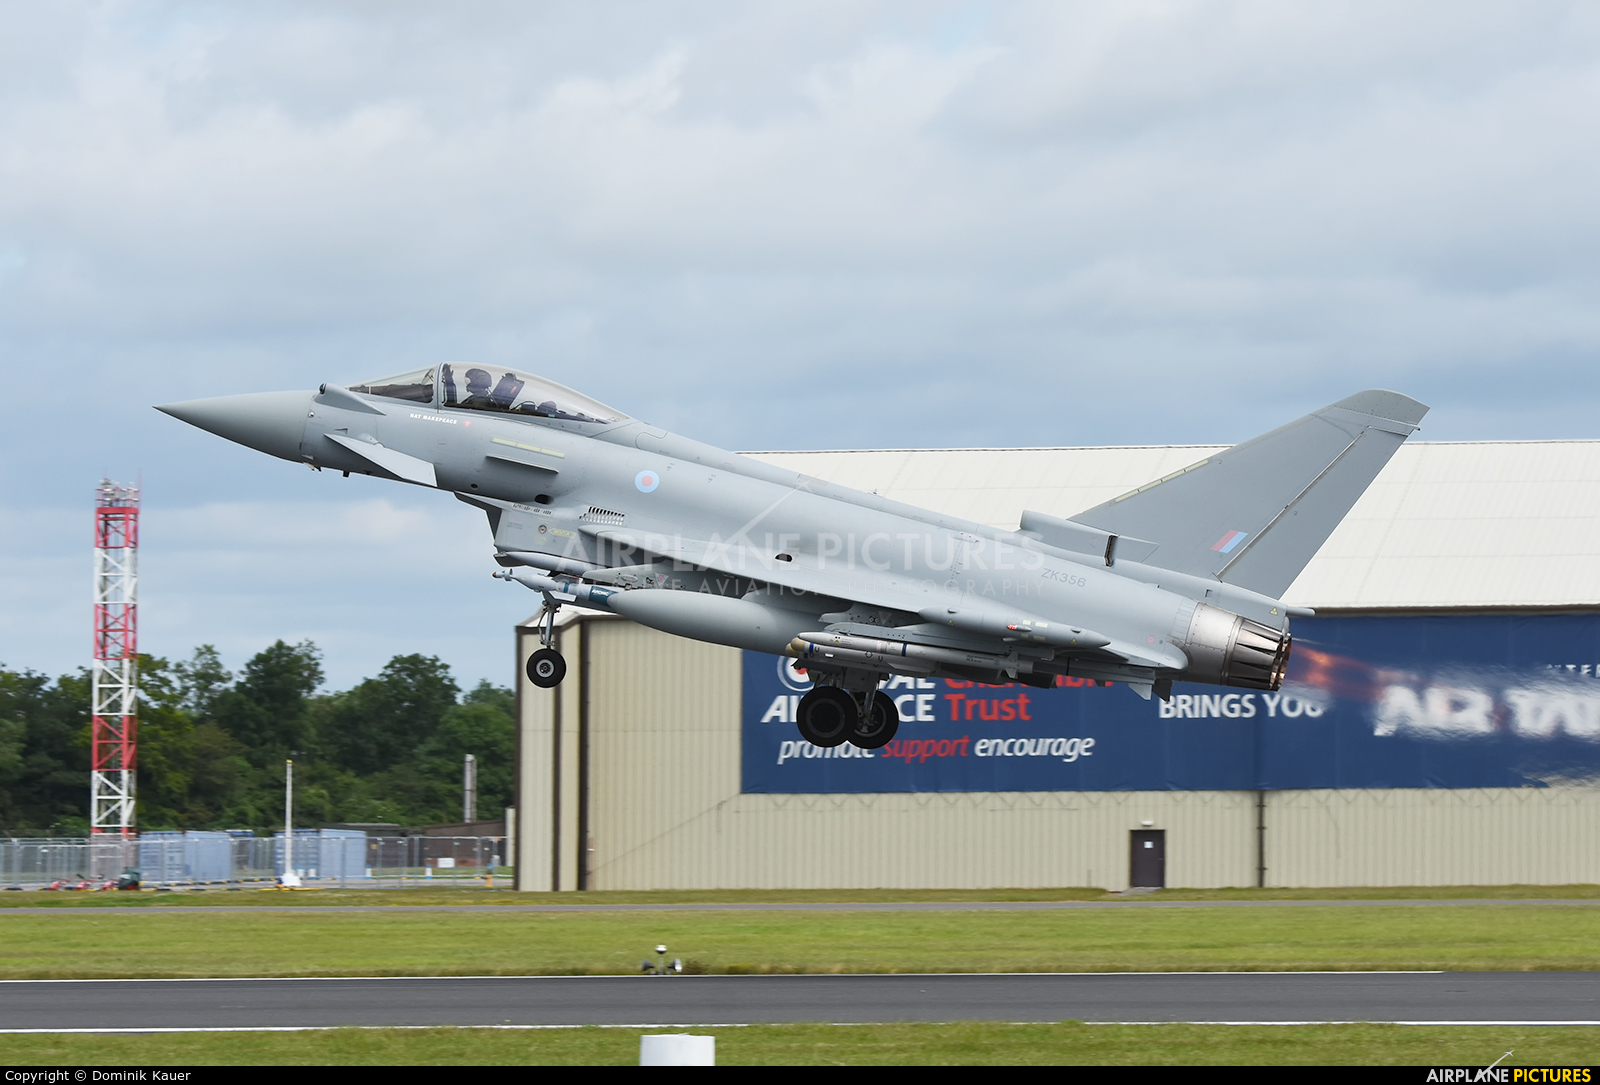 Royal Air Force ZK356 aircraft at Fairford